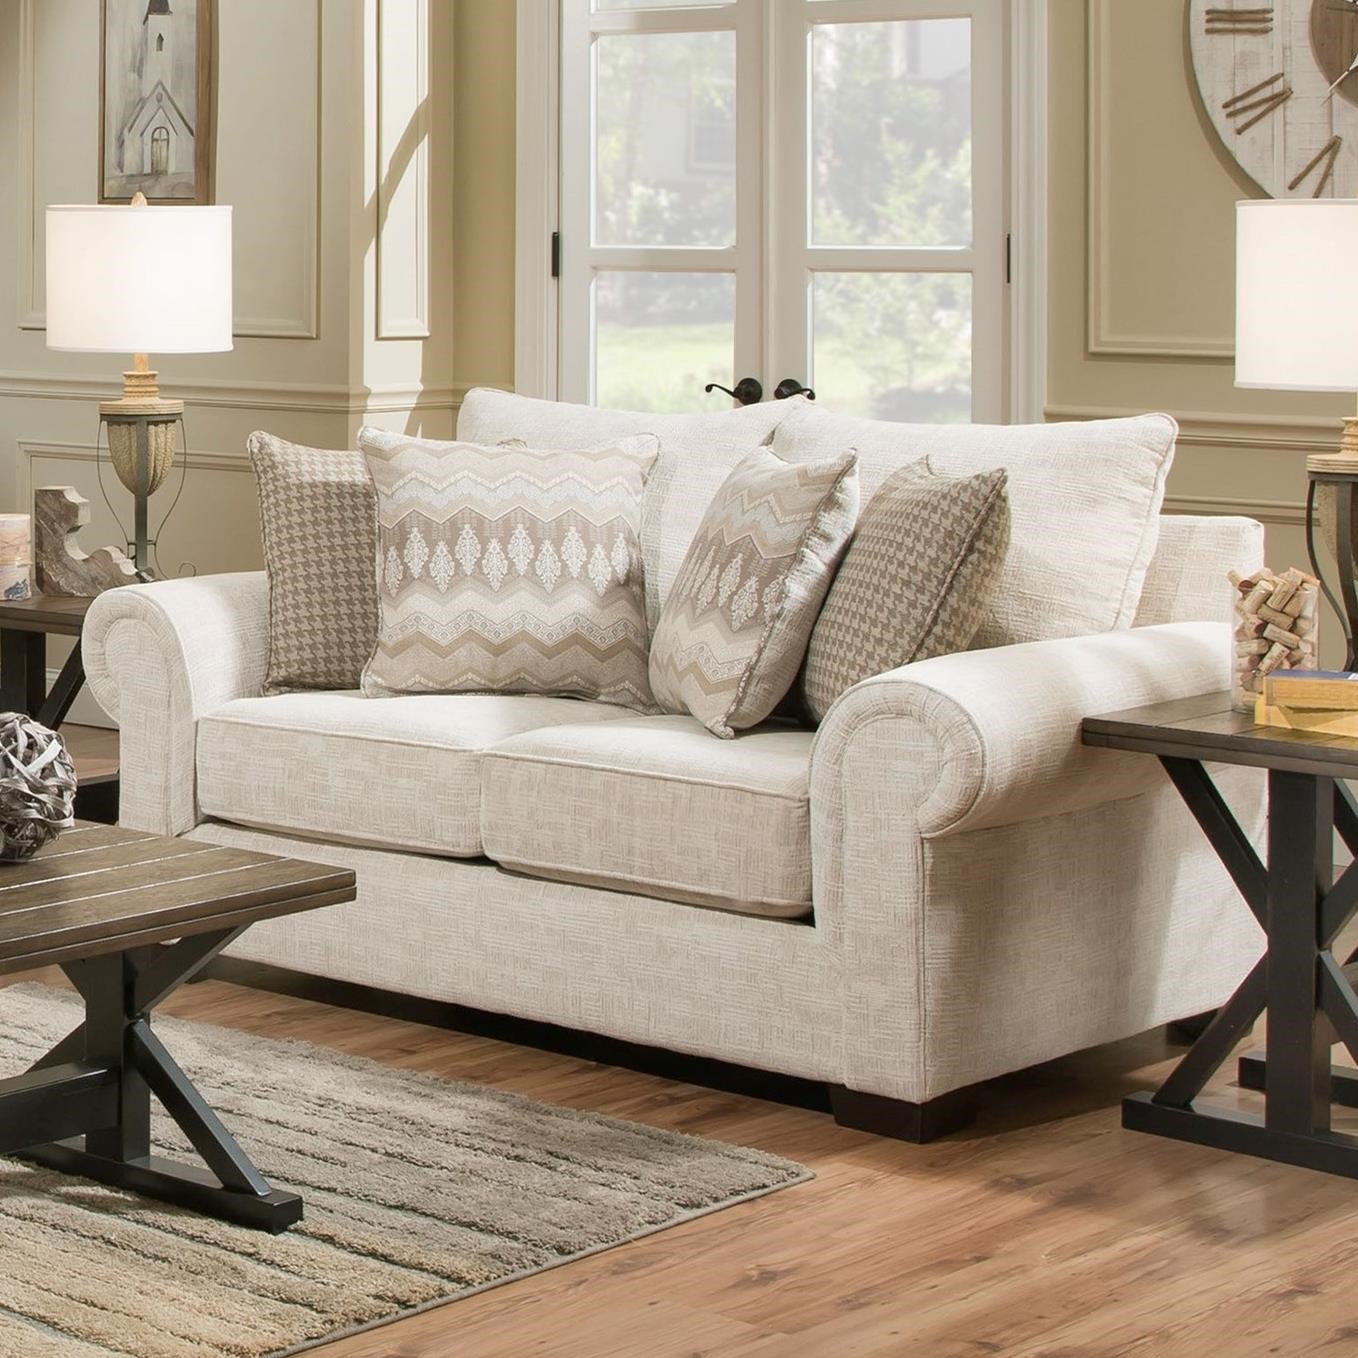 7592BR Transitional Loveseat by United Furniture Industries at Pilgrim Furniture City